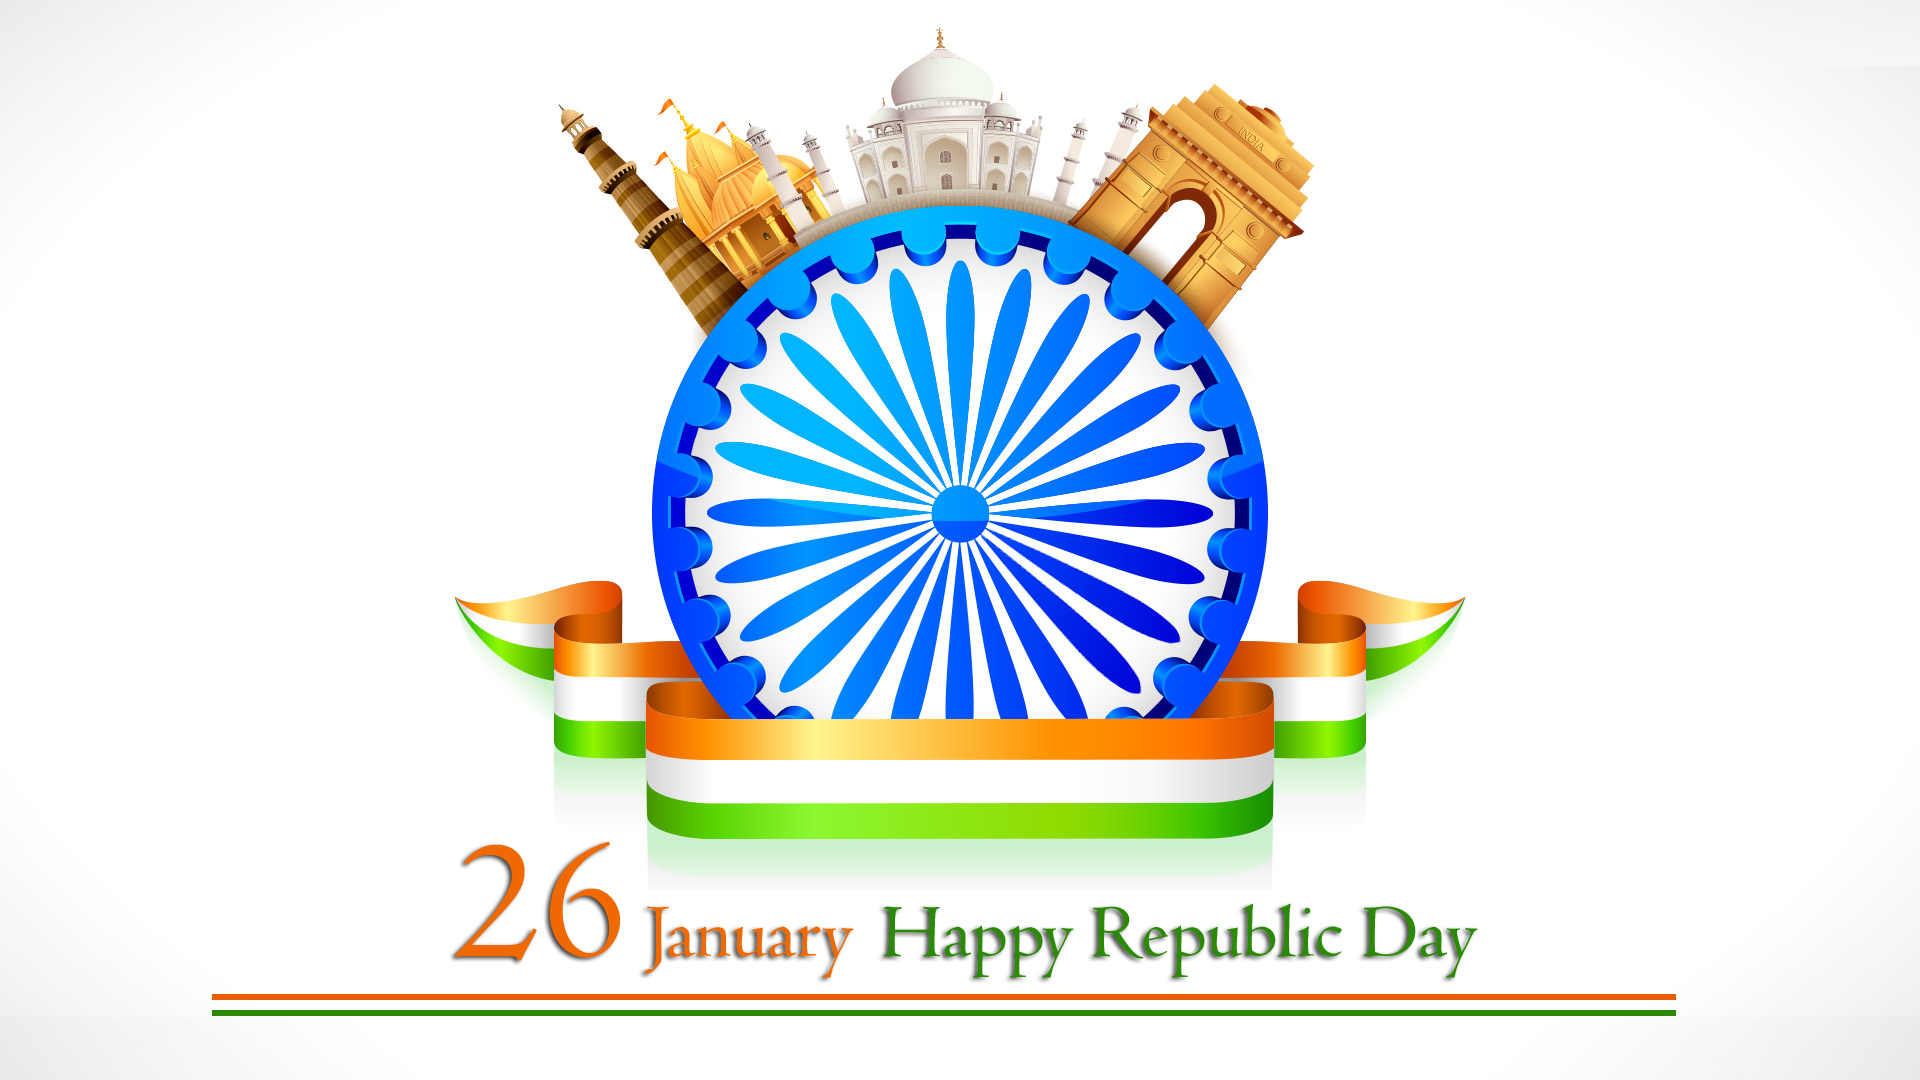 Republic Day Images in HD